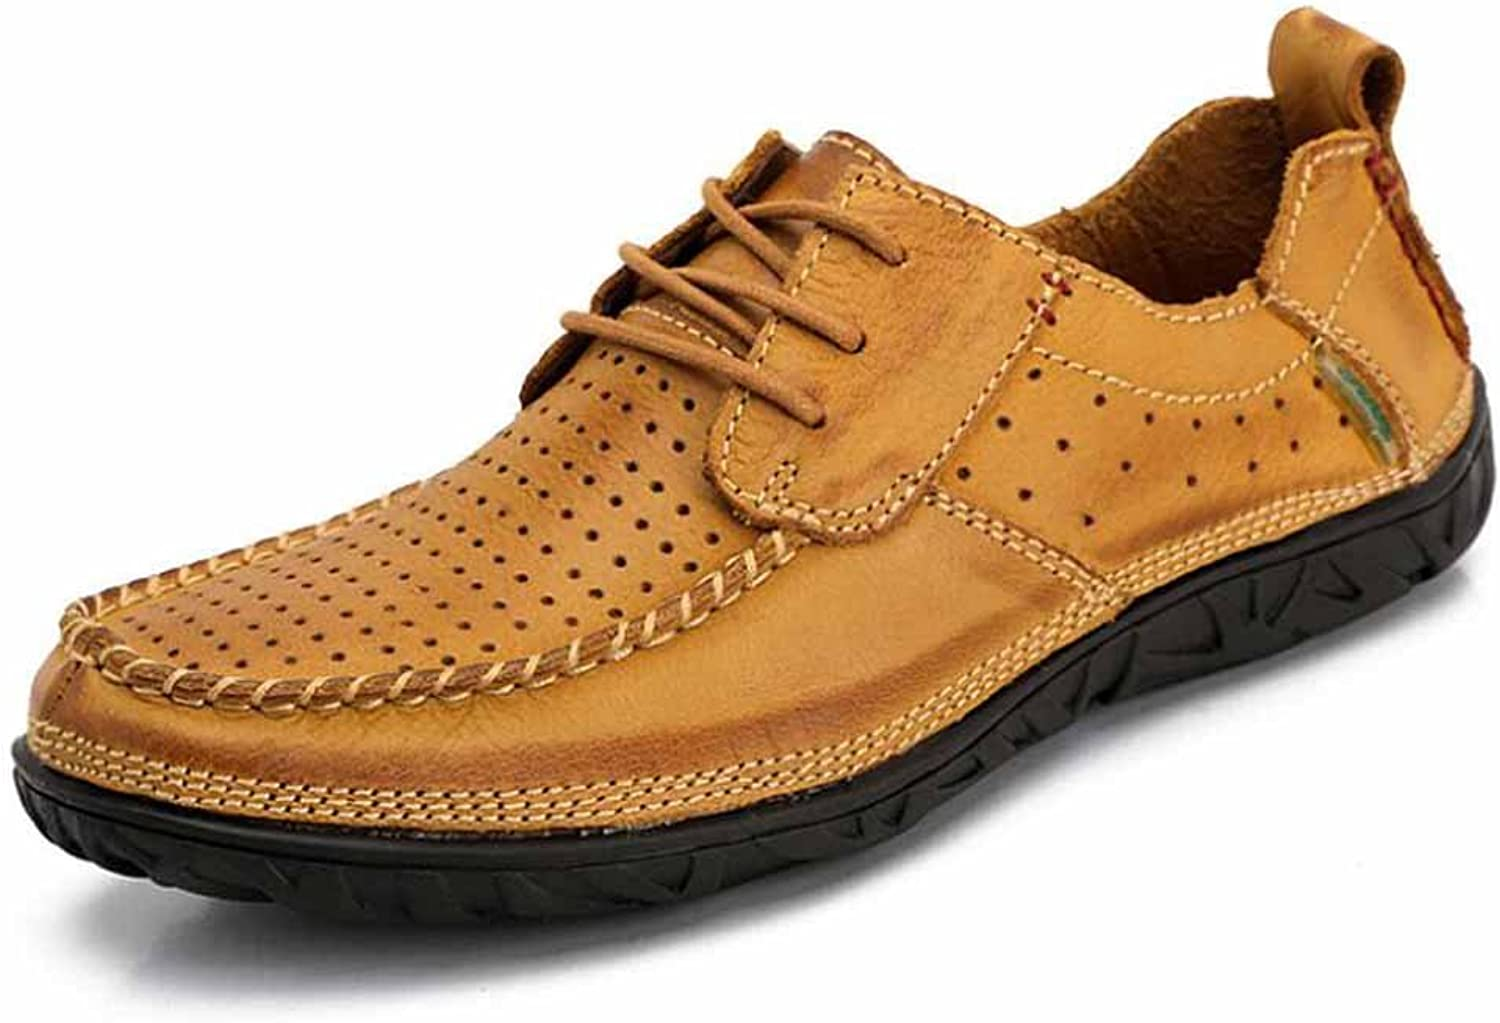 SHIXRAN Men Loafers shoes Autumn Fashion Breathable Comfortable Soft Casual shoes Handmade Leather shoes